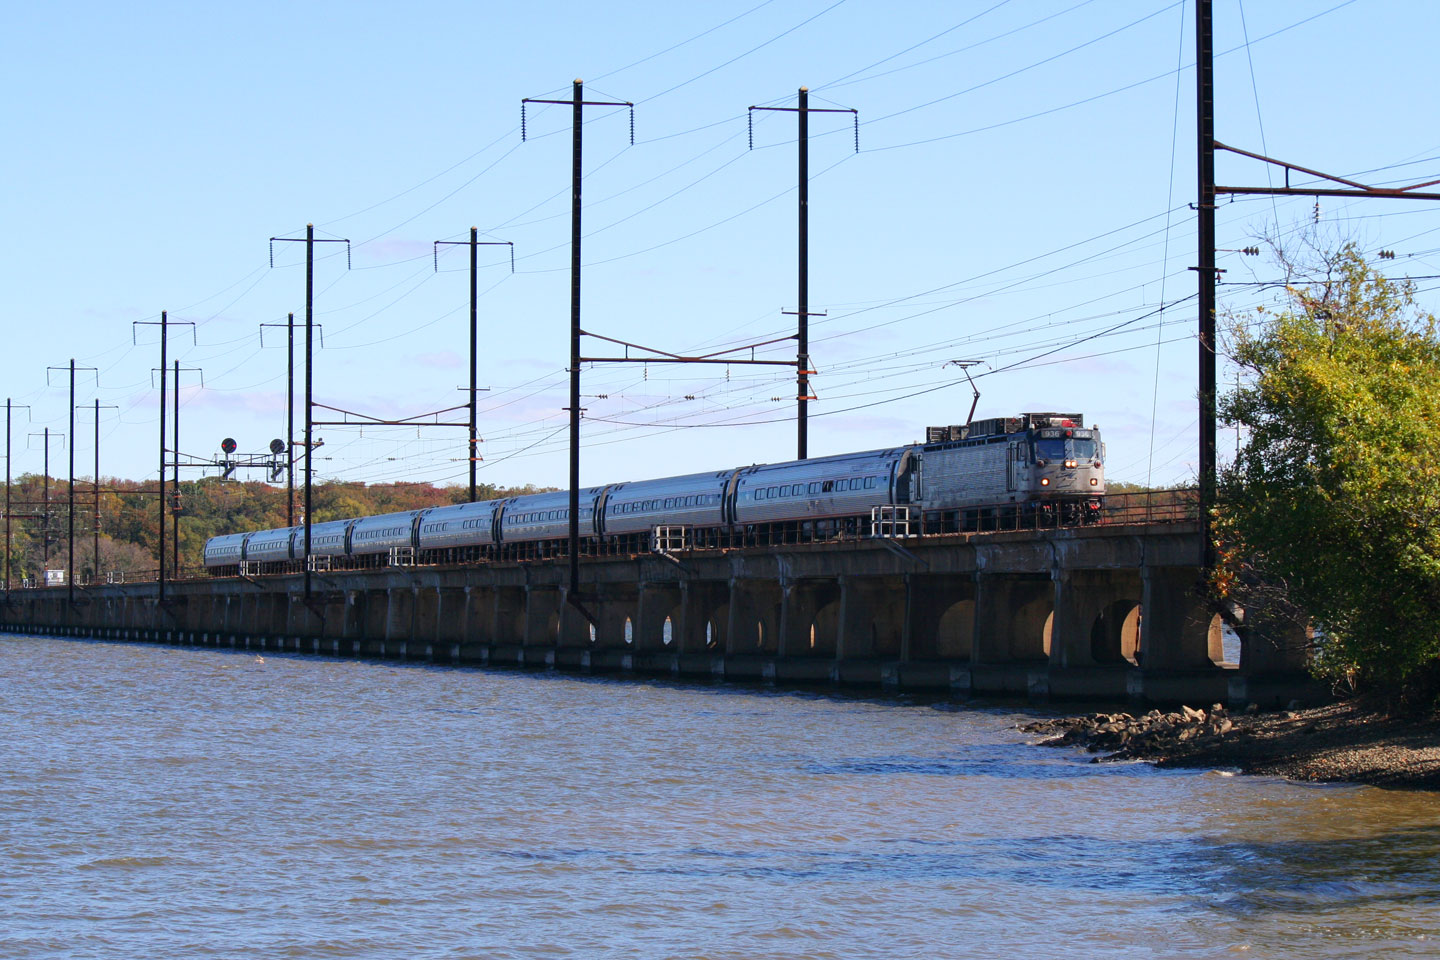 Luckily, Amtrak slows for the bridge, so I got to get a second shot off.